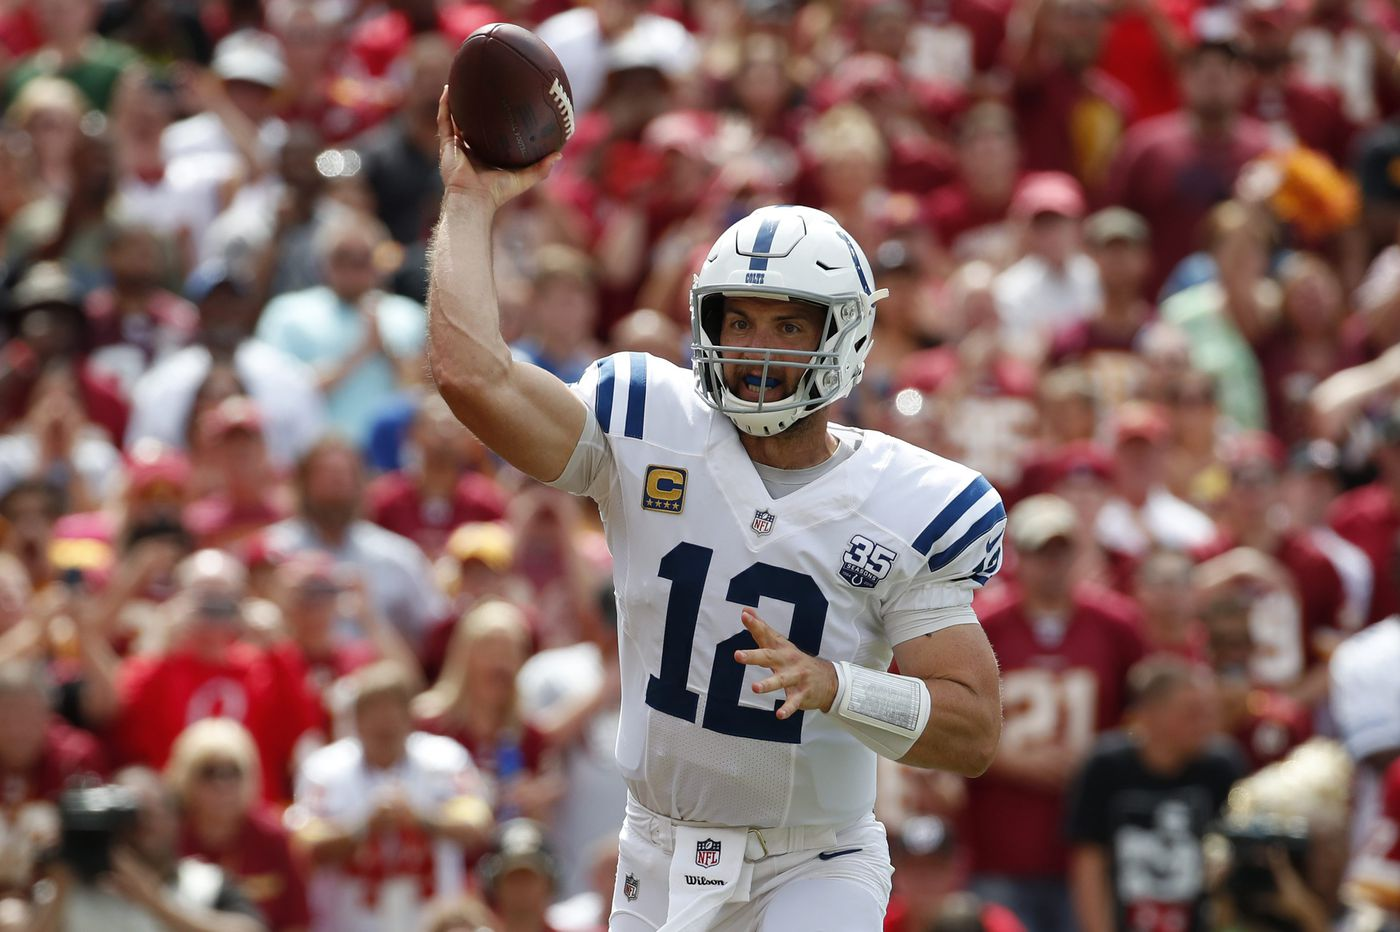 Colts QB Andrew Luck will come to Philadelphia shaking off rust but still dangerous